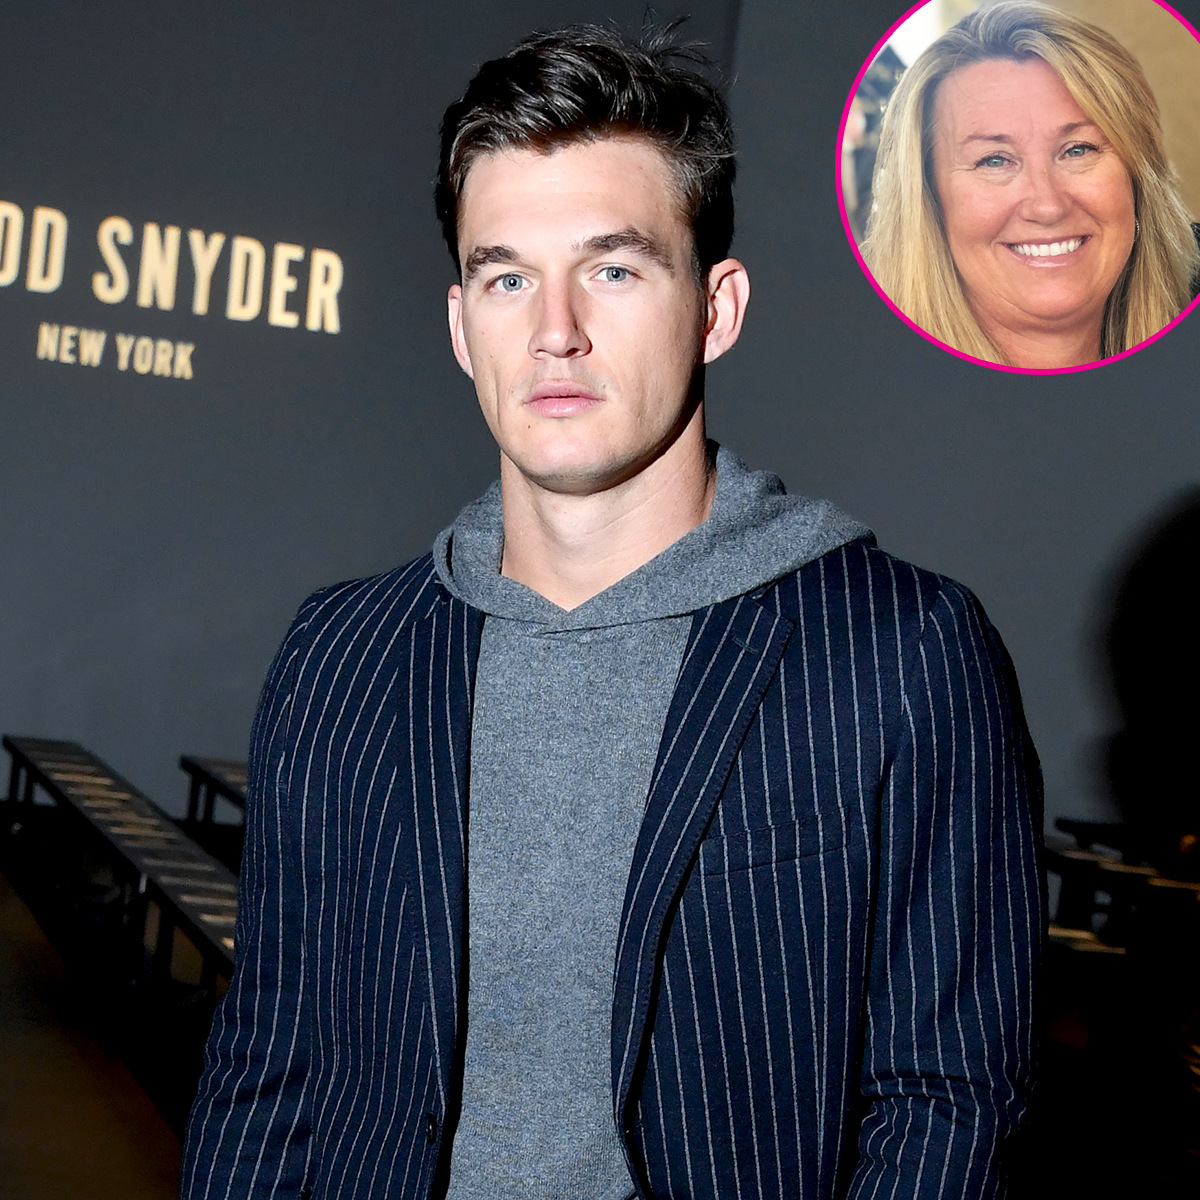 Tyler Cameron's Mom Andrea Hermann Cameron's Cause of Death Revealed